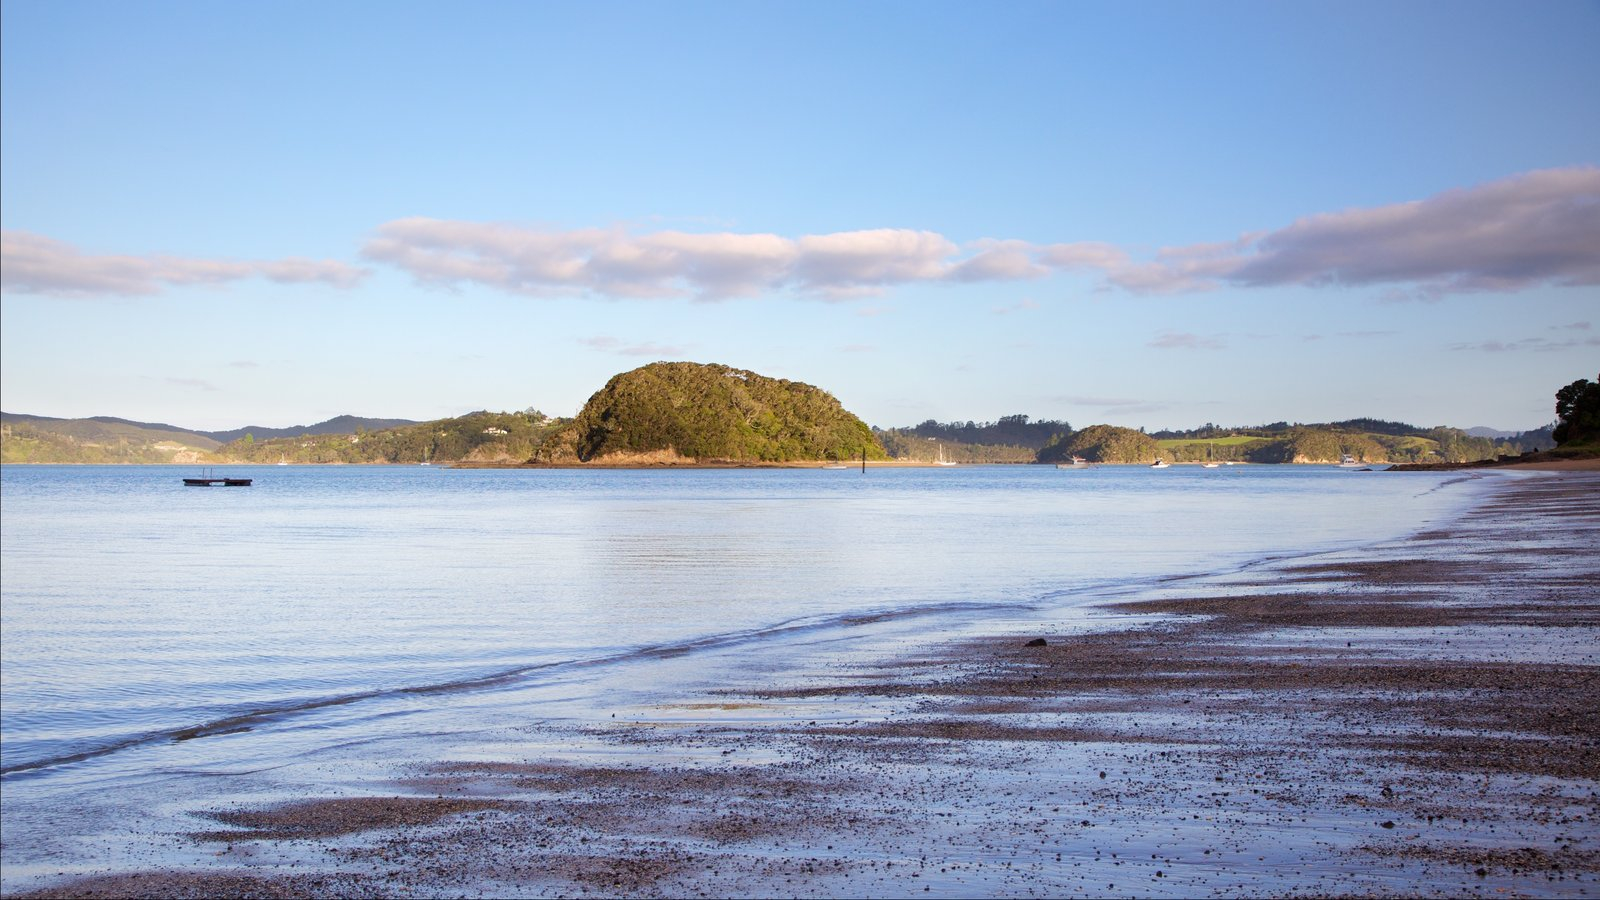 Paihia which includes a sandy beach, general coastal views and a bay or harbor